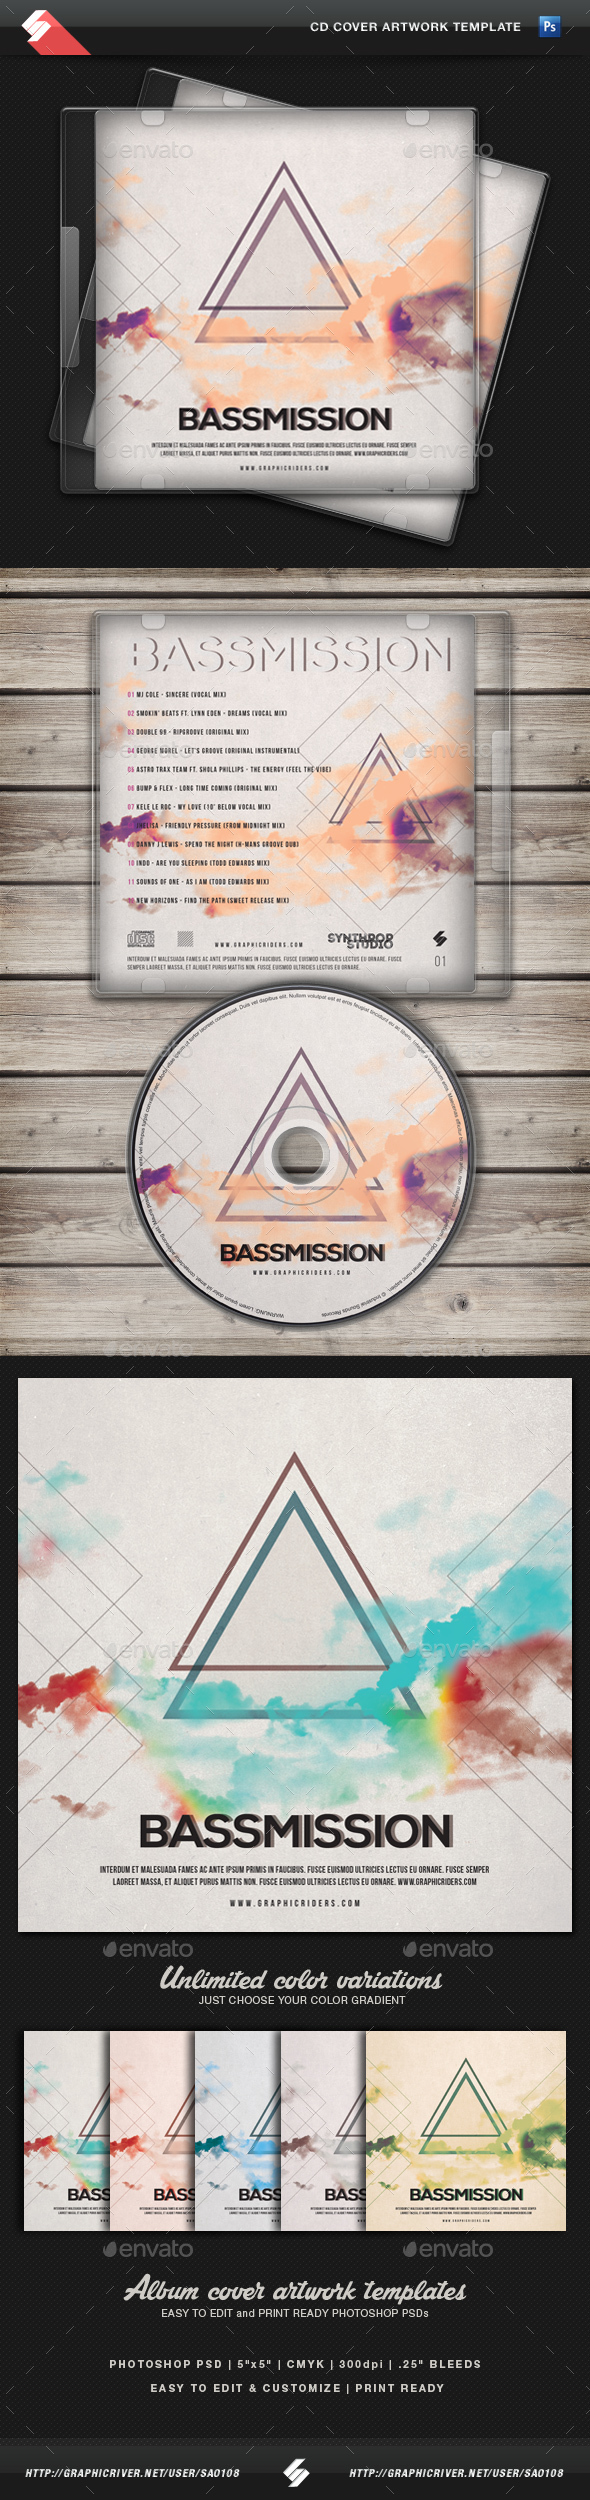 Bassmission - CD Cover Artwork Template - CD & DVD Artwork Print Templates